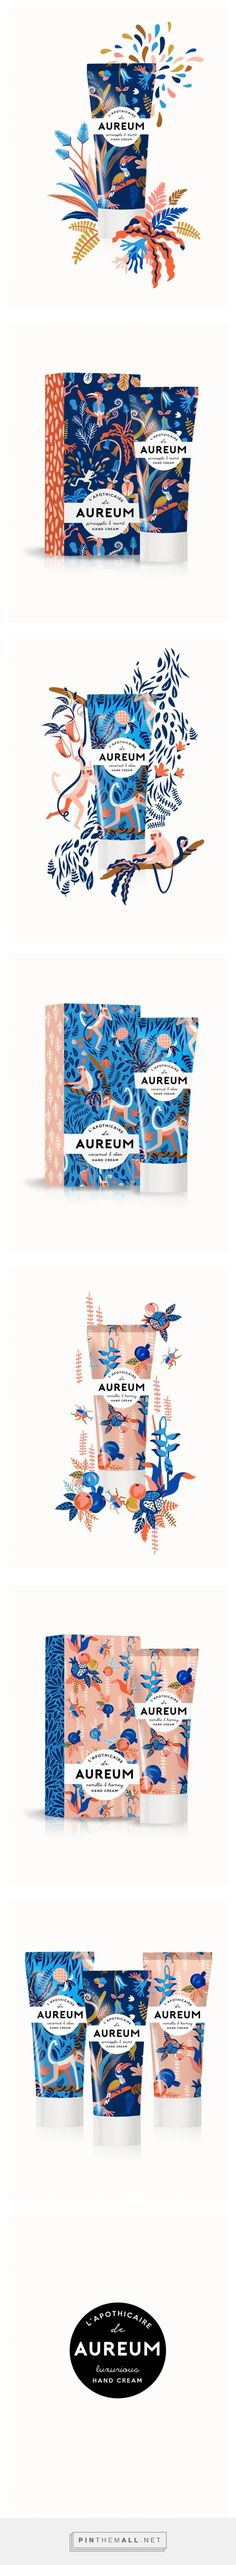 http://www.amit.gallery , http://www.amit.tube , From Pinterest L'apothicaire de Aureum / cosmetics by Mei Tan